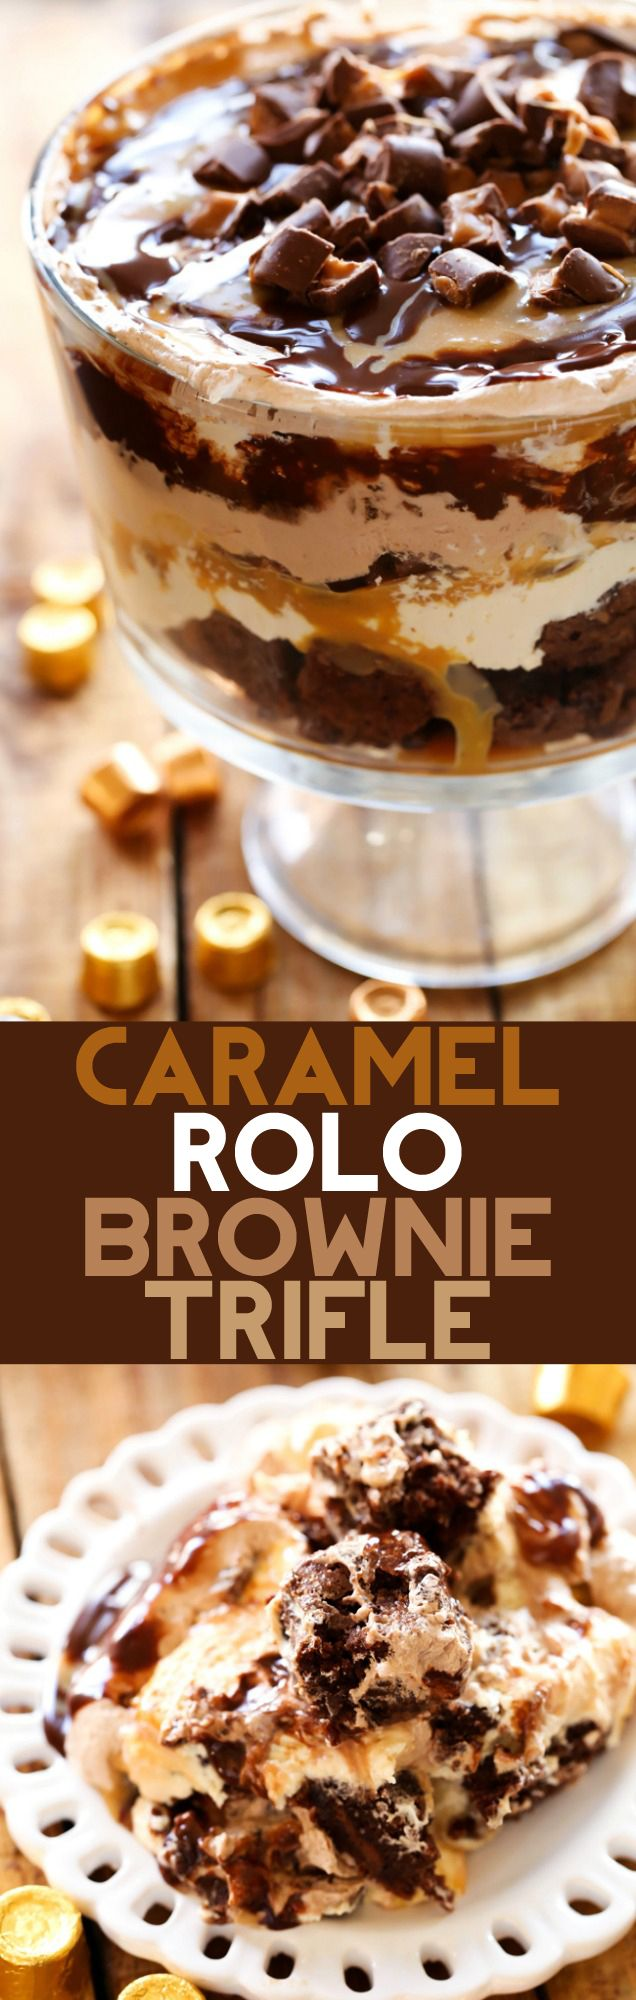 Caramel ROLO Brownie Trifle… This dessert is so incredibly rich and delicious! With layers of ROLO brown